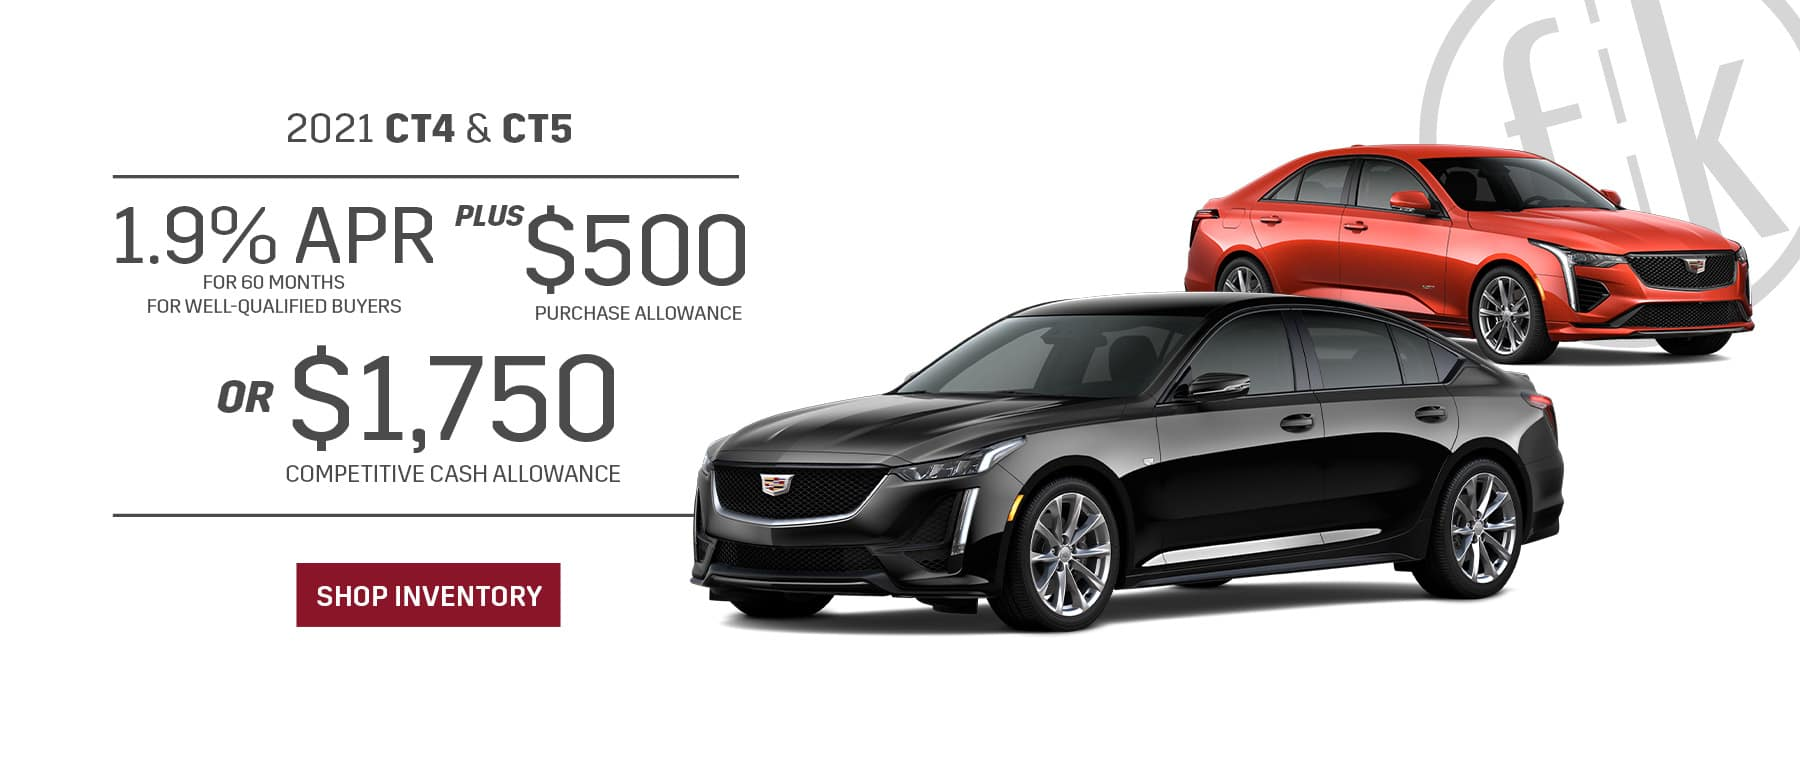 2021 CT4 & CT5 1.9% for 60 mos PLUS $500 Purchase Allowance OR $1,750 Competitive Cash Allowance